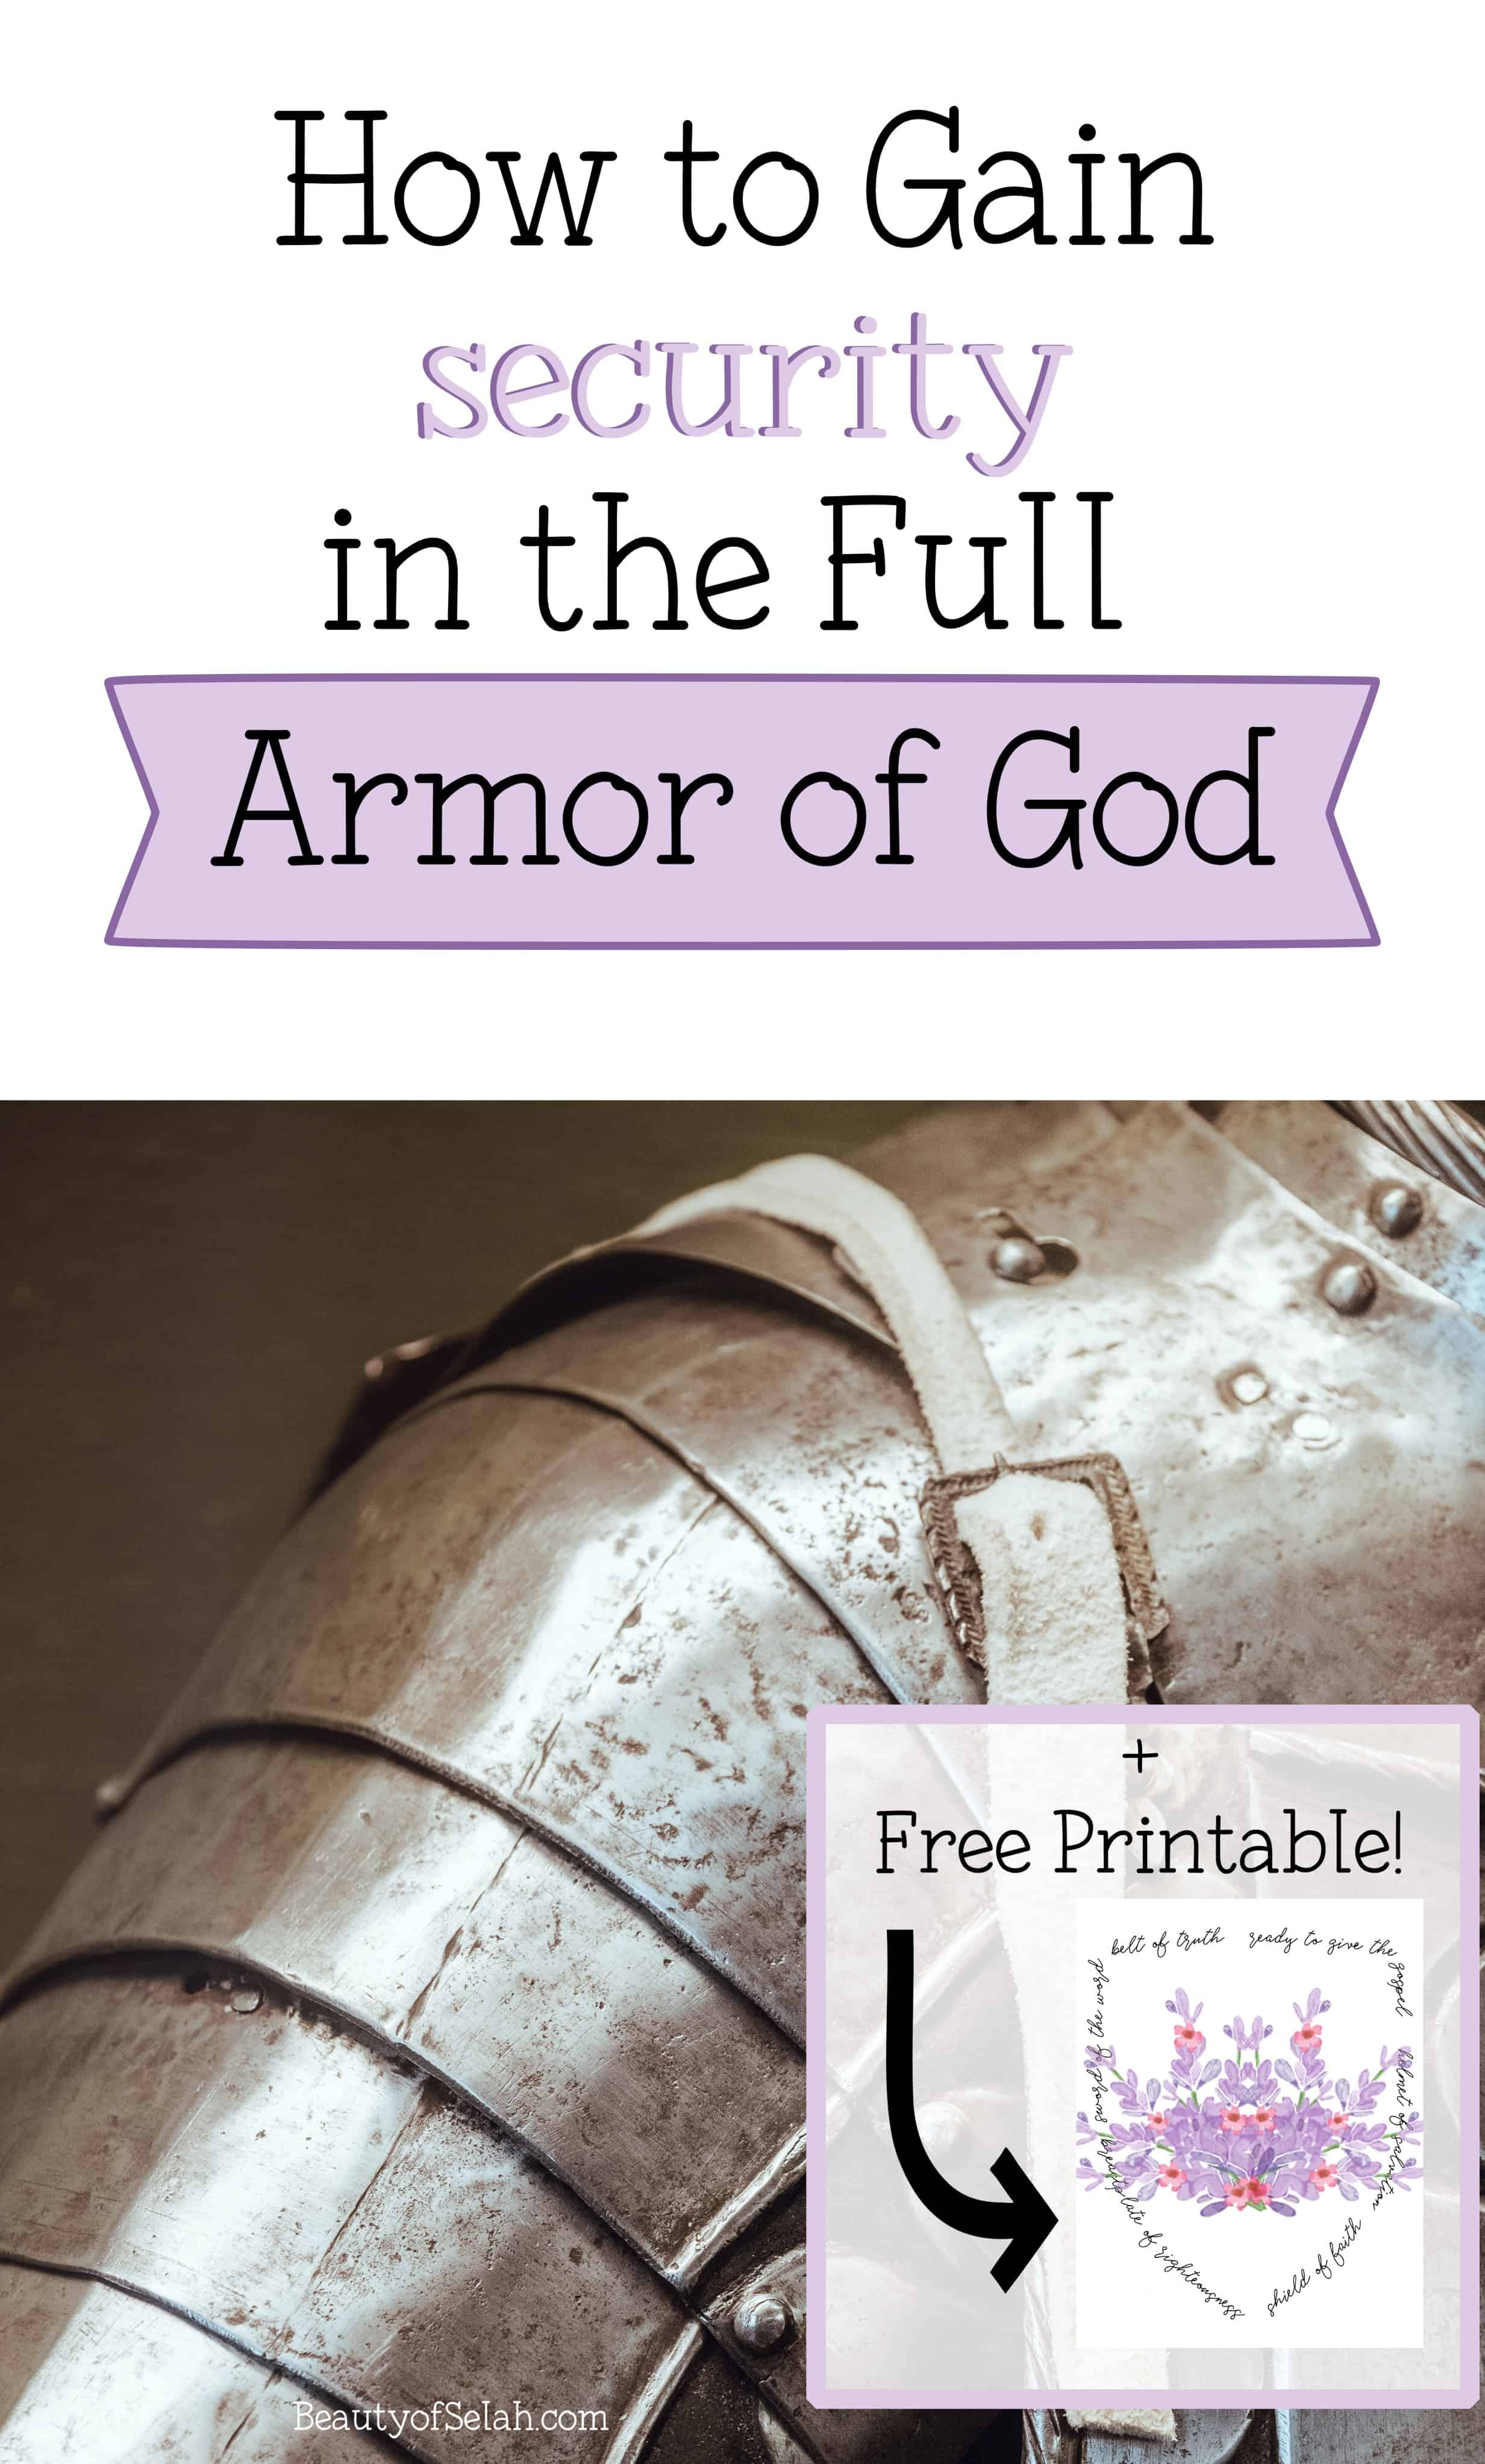 How to Gain Security in the Full Armor of God